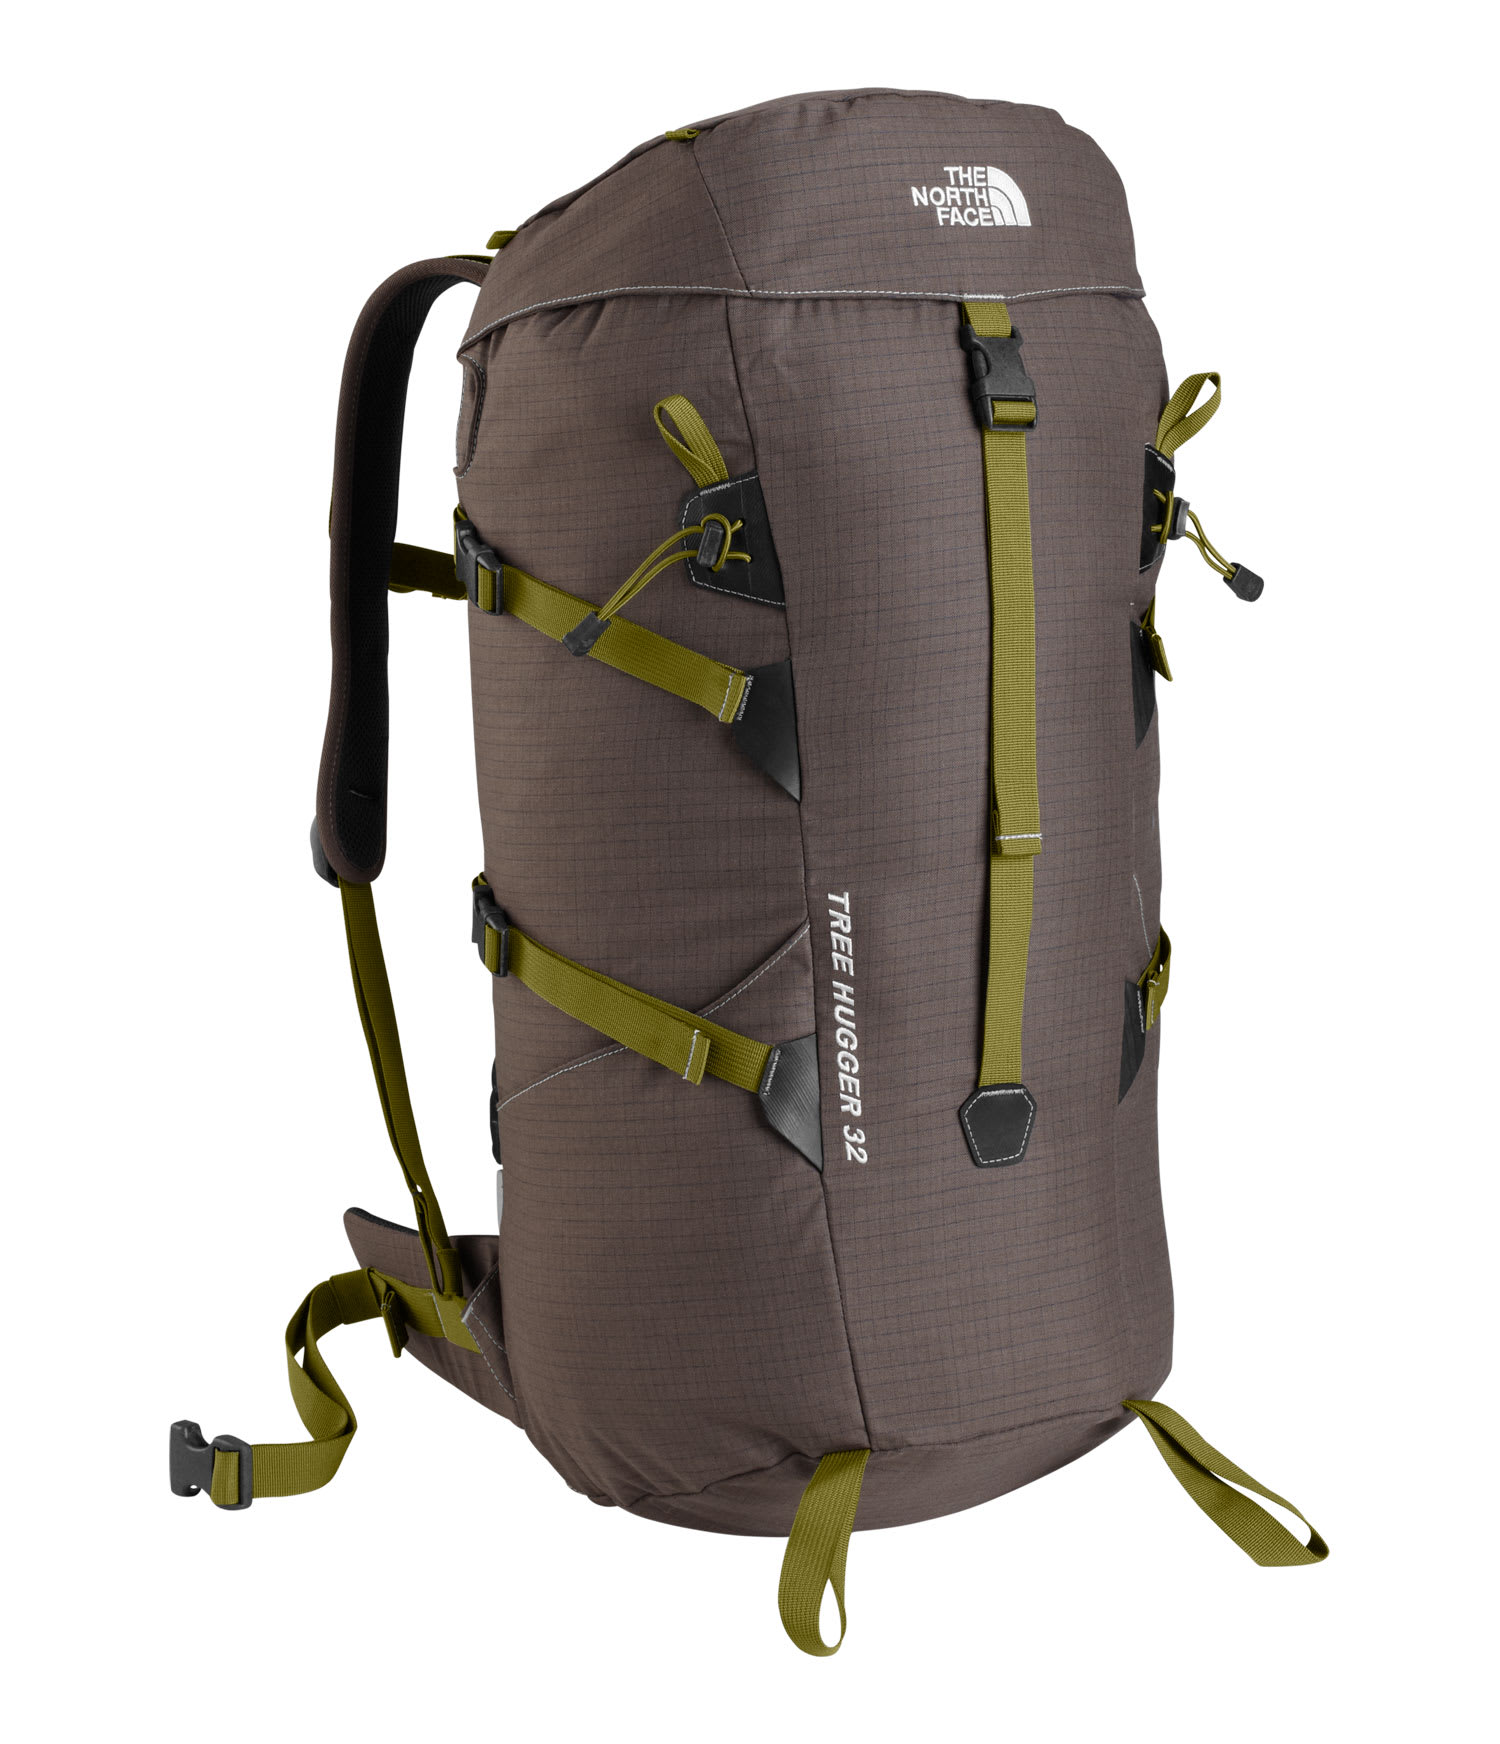 The North Face Tree Hugger 32L Backpack Weimaraner Brown